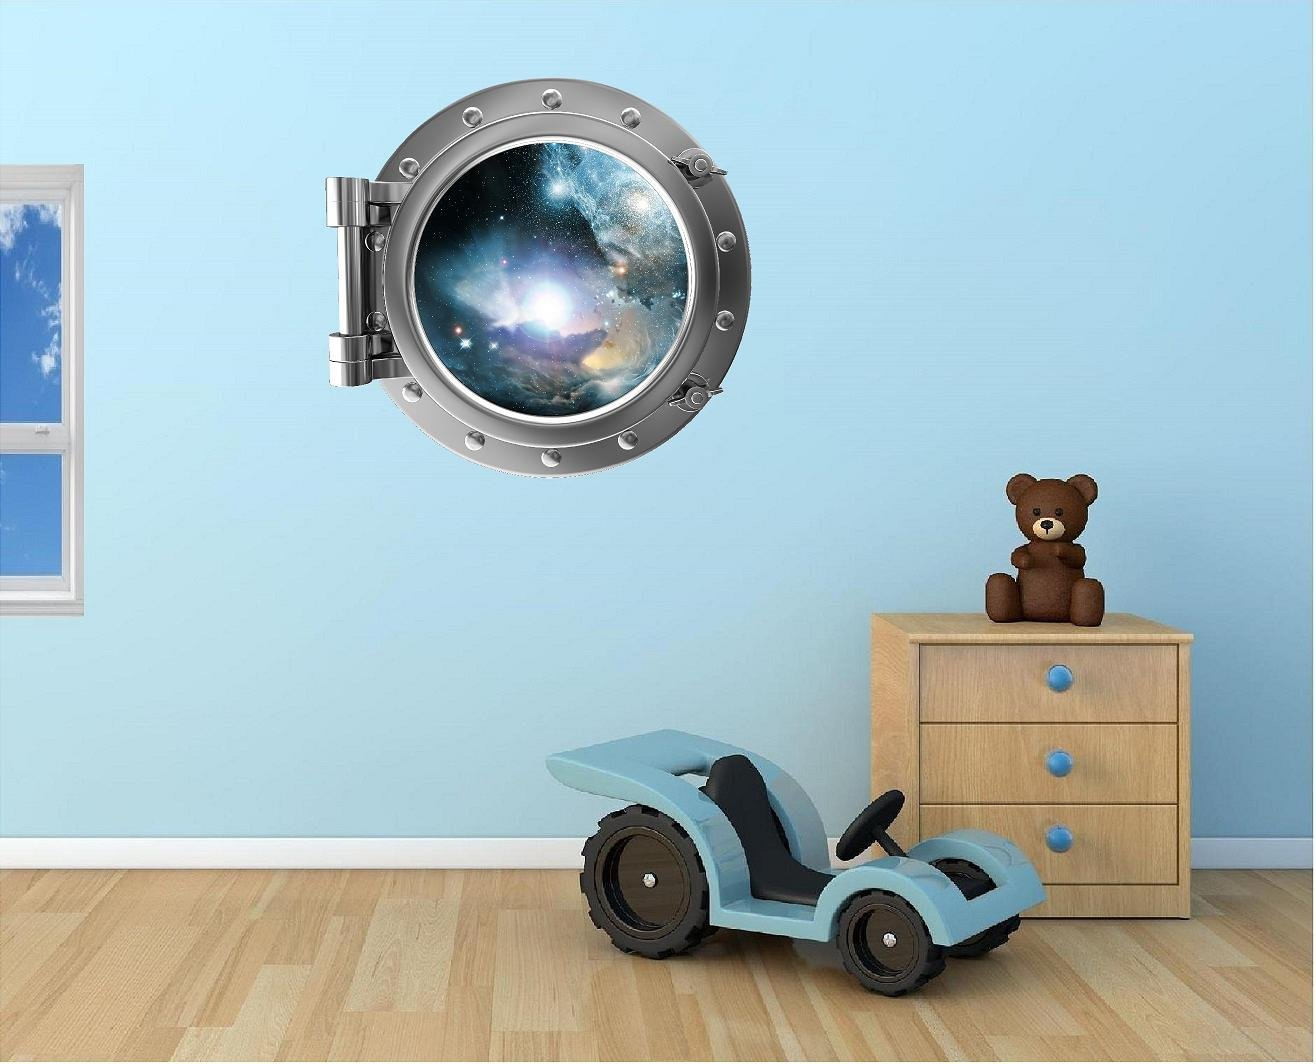 24'' Port Scape Instant Space ship Window View NEBULA & STARS #1 SILVER Porthole Wall Decal Sticker Graphic Mural Home Kids Game Room Art Decor NEW